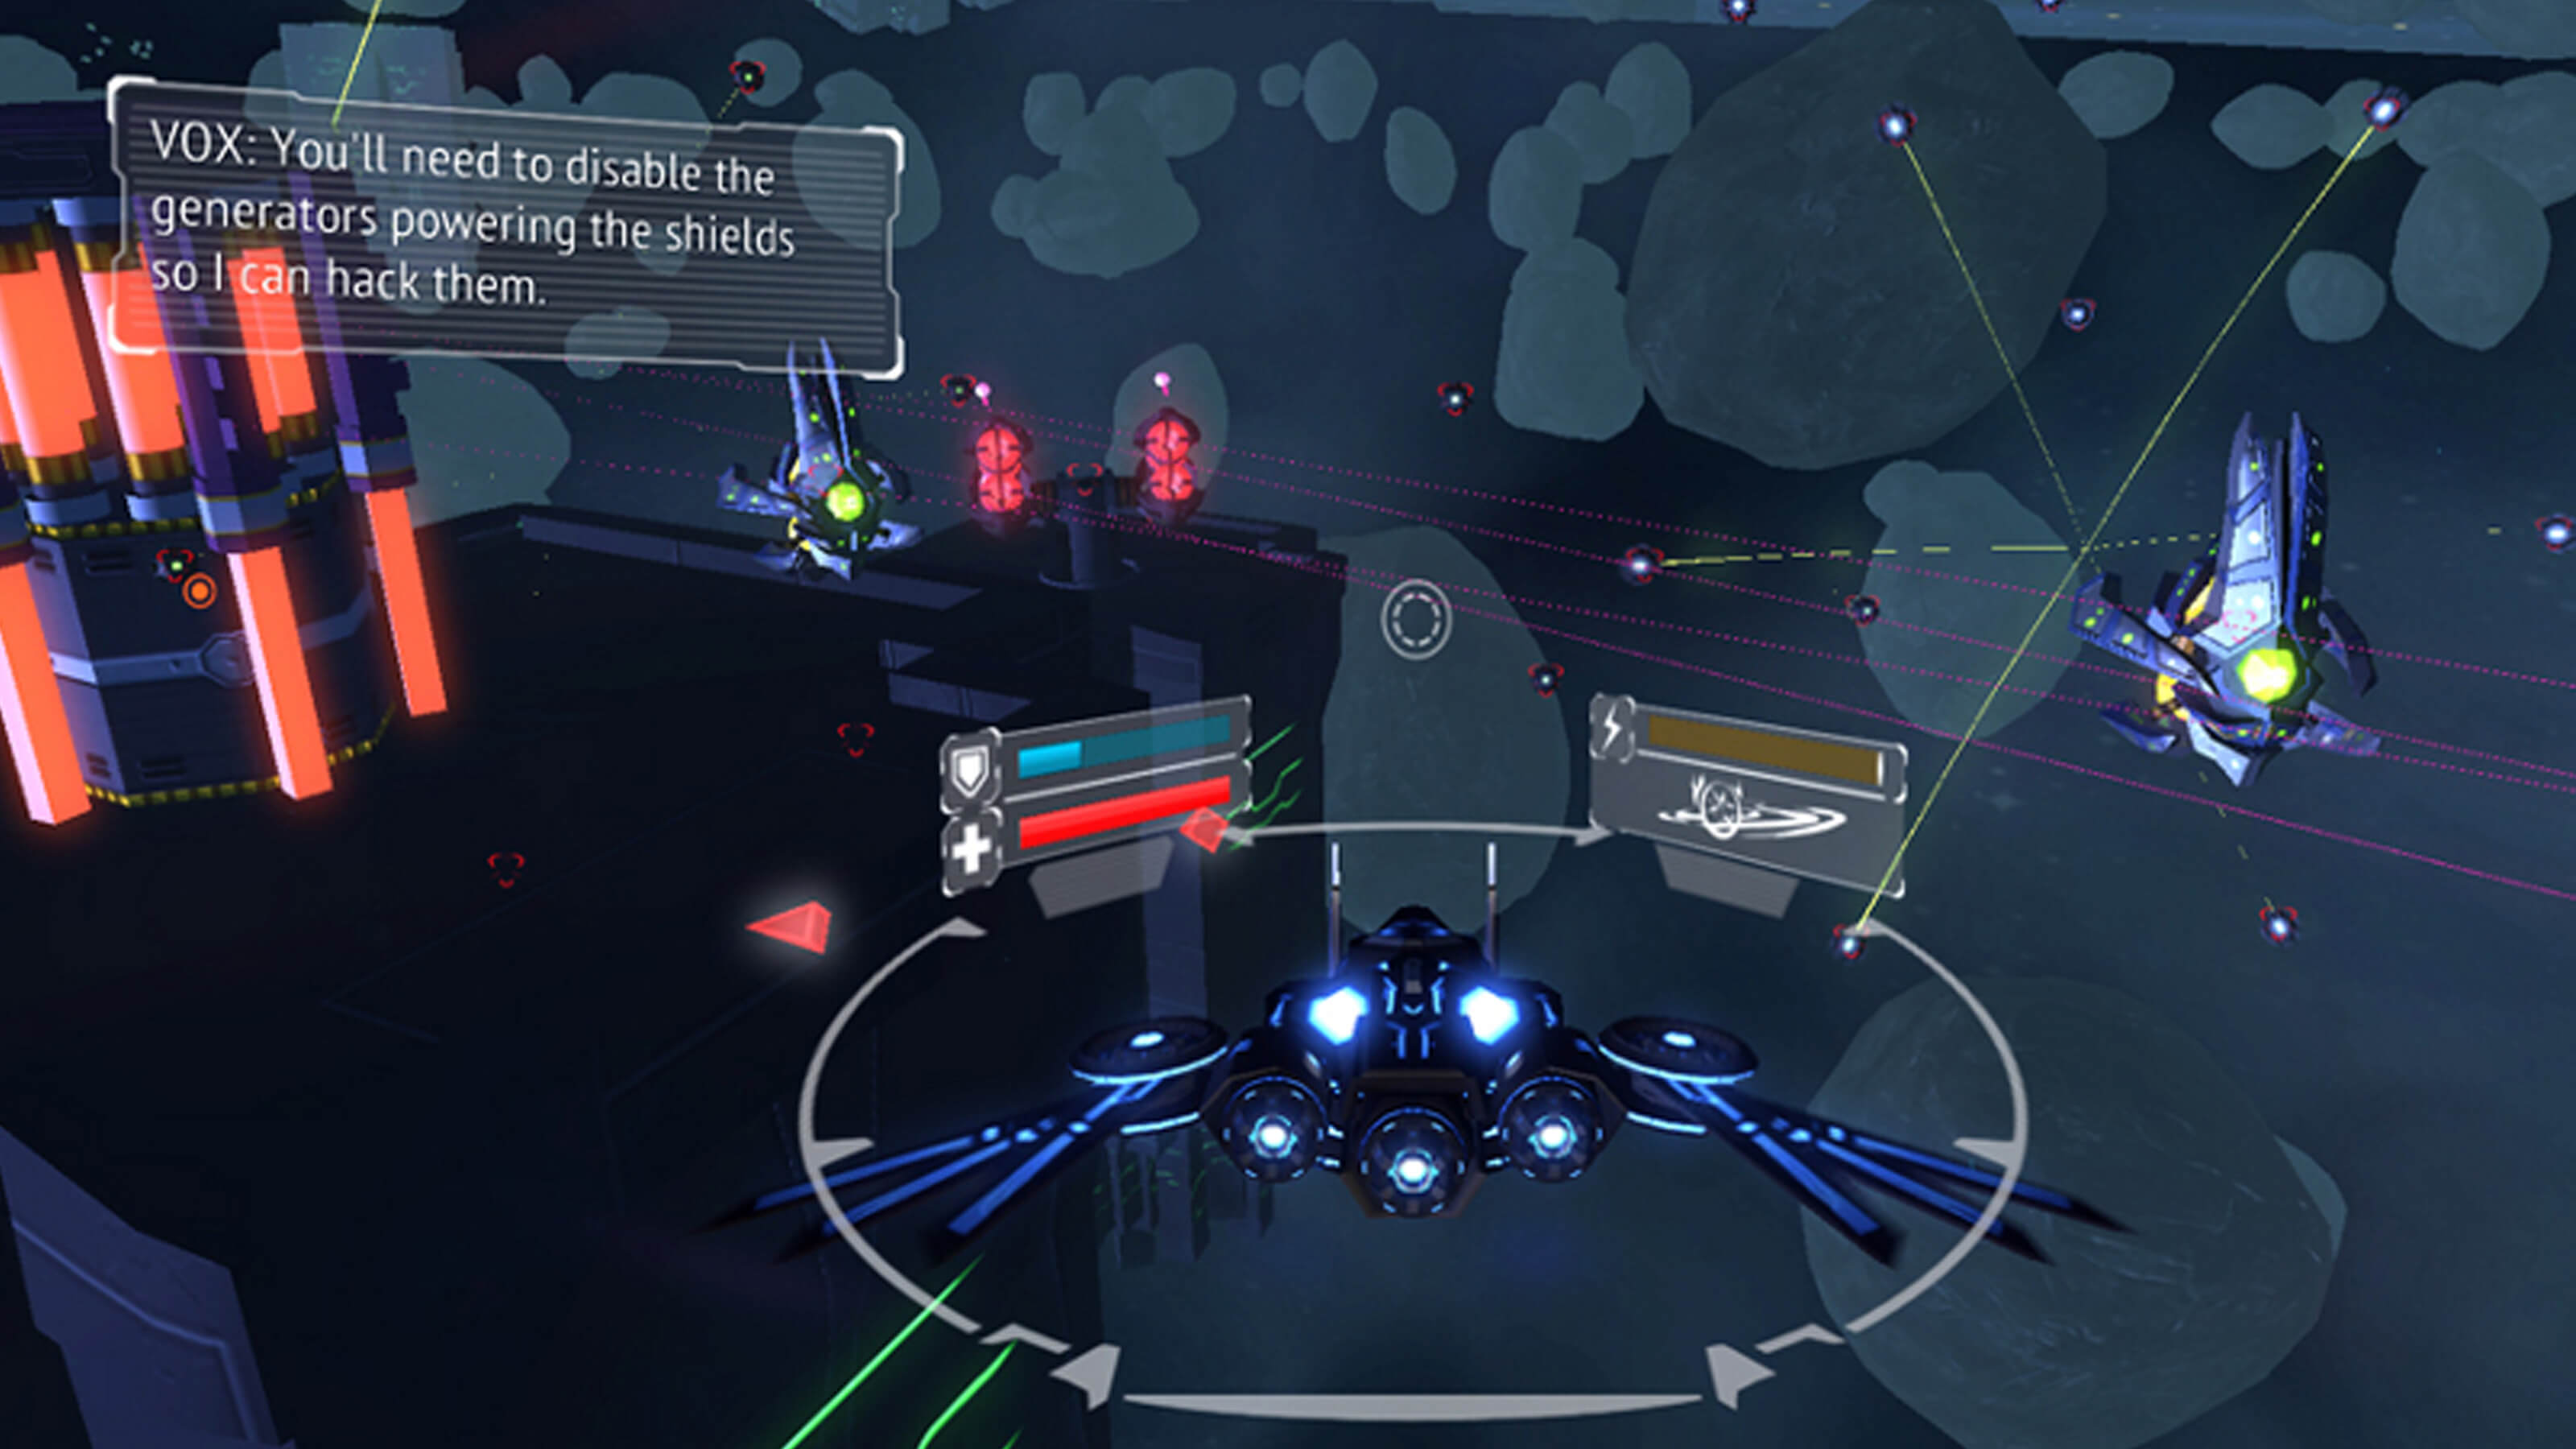 The blue and black space ship approaches enemies with a space station and asteroid field in the background.